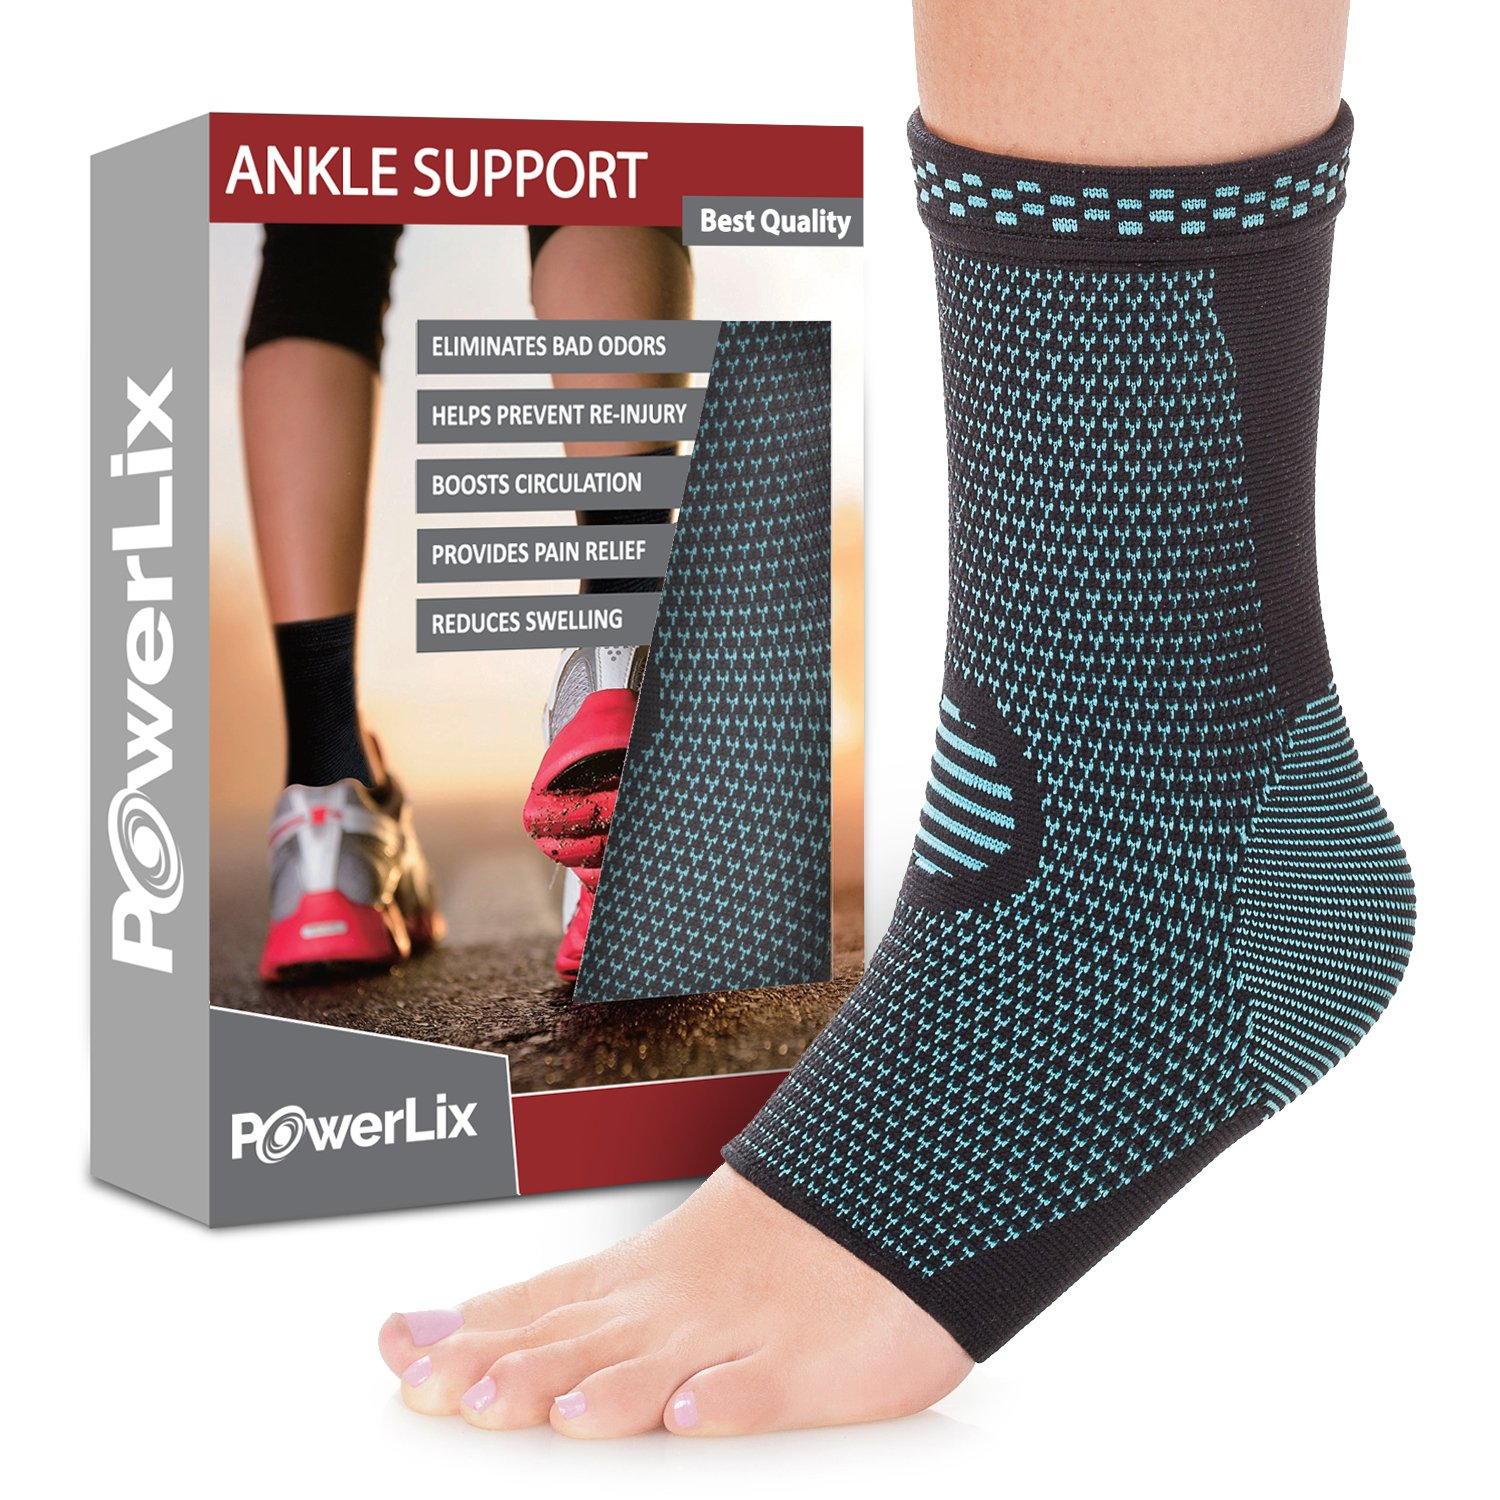 Picture of the PowerLix compression sleeve